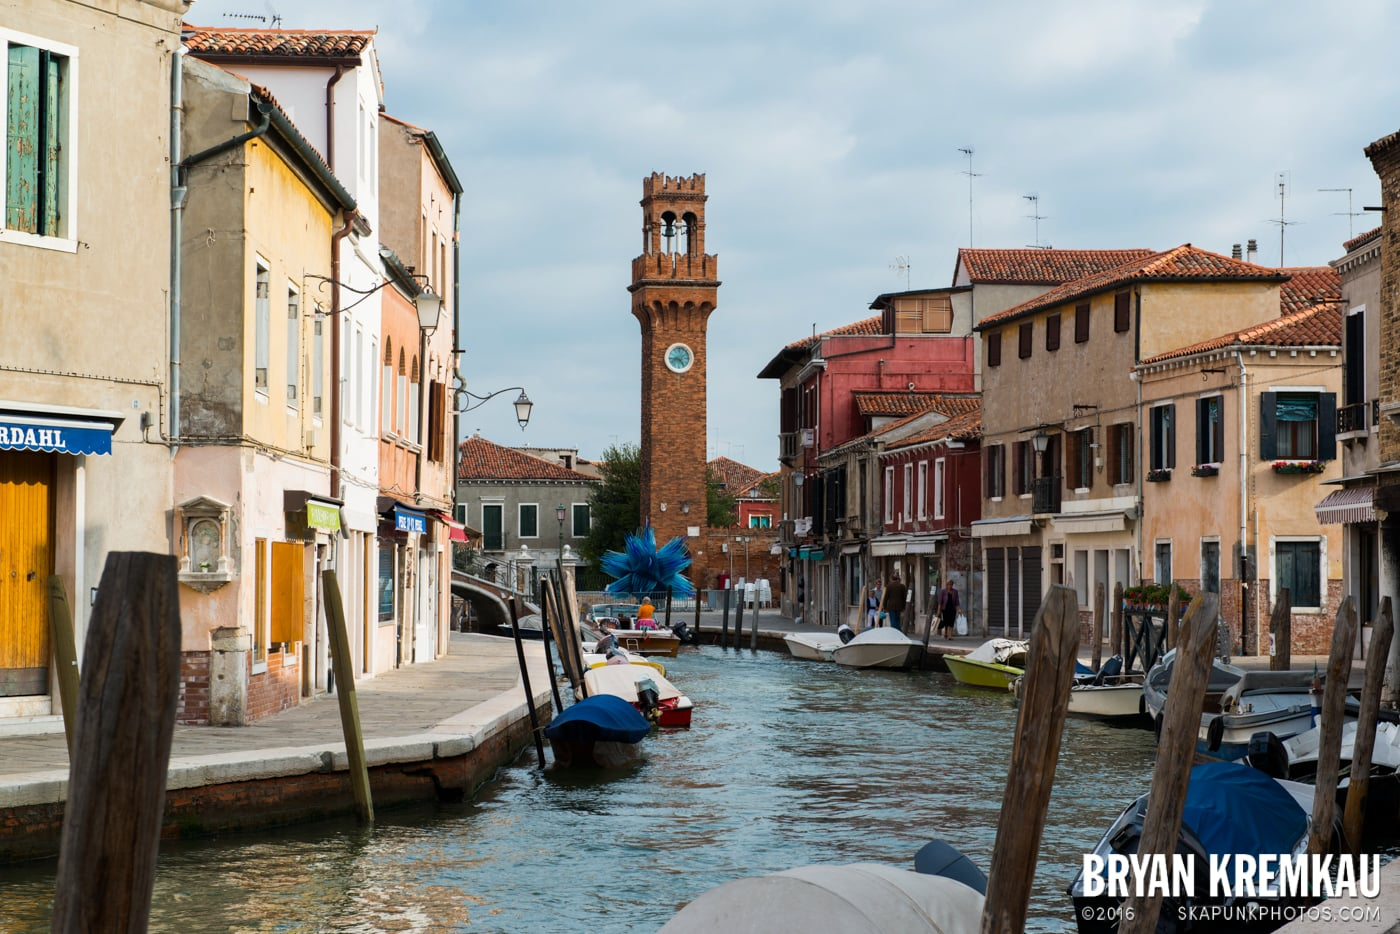 Italy Vacation - Day 6: Murano, Burano, Venice - 9.14.13 (95)